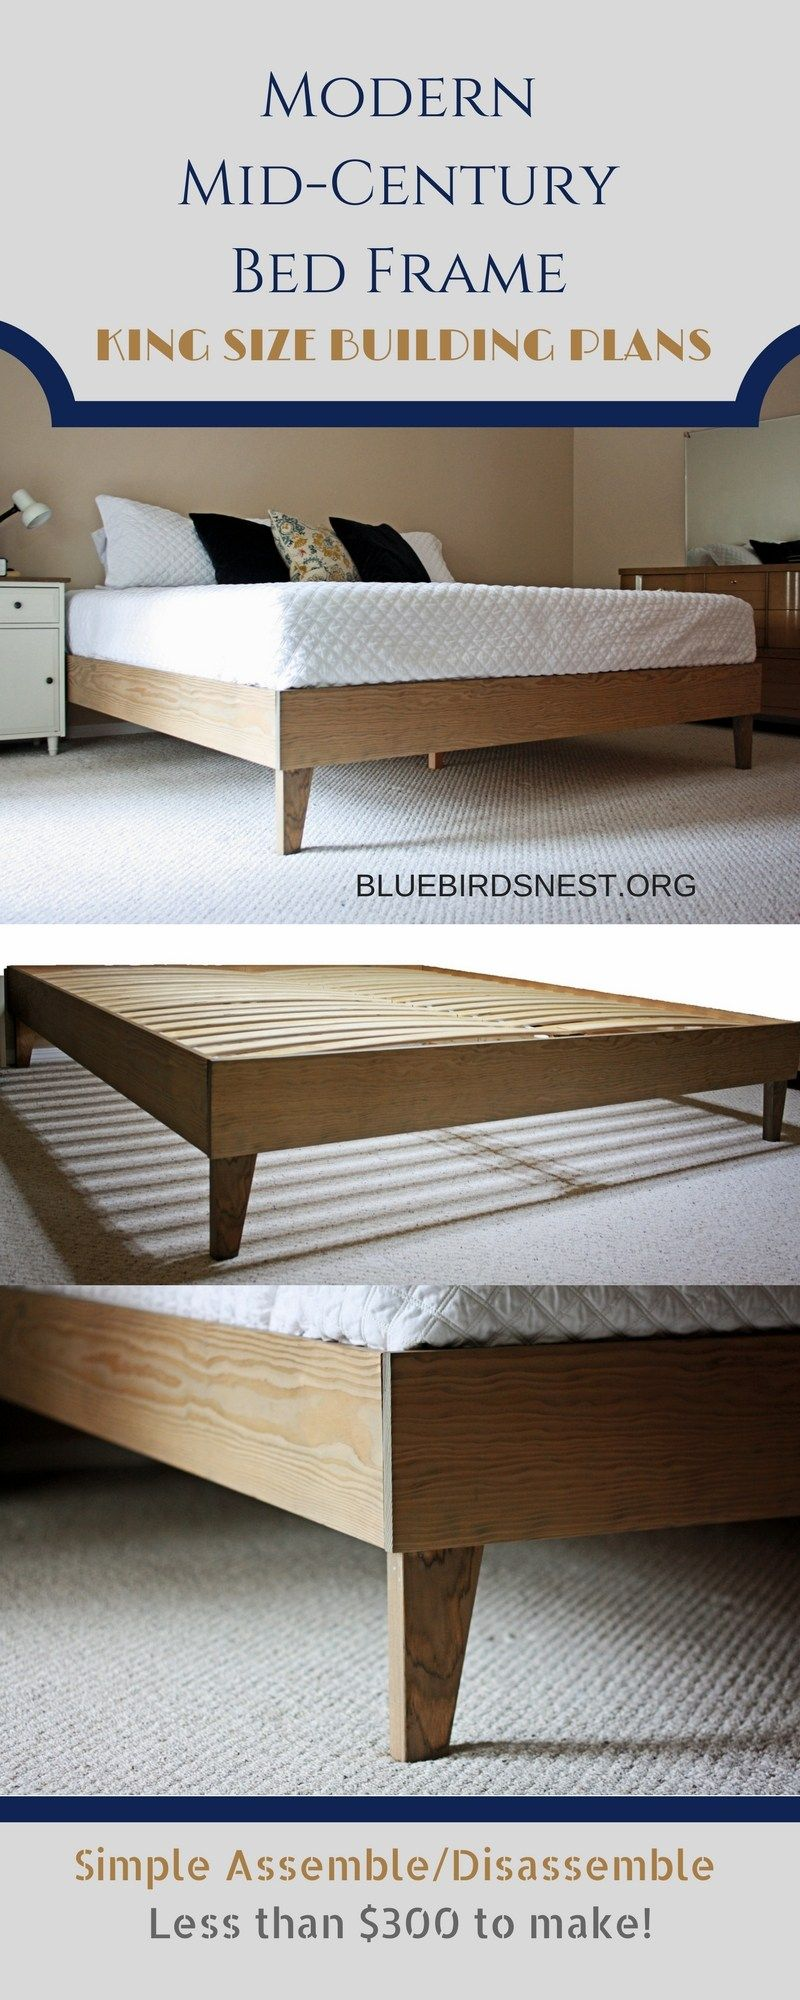 King Size Bed Frame Modern Mid Century Platform Building Plans